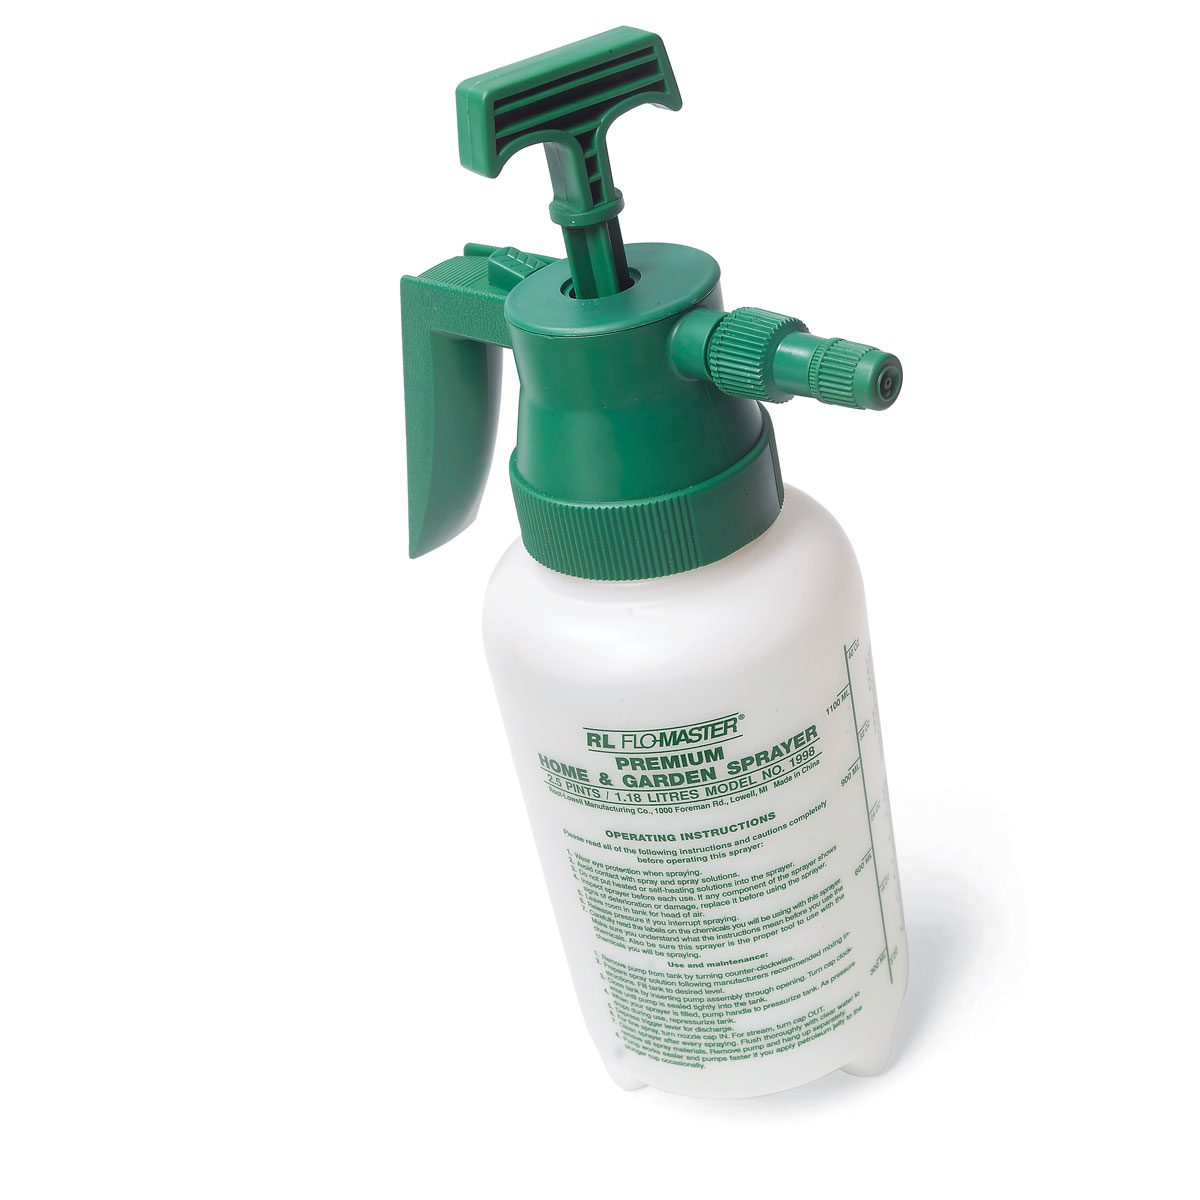 Small sprayer